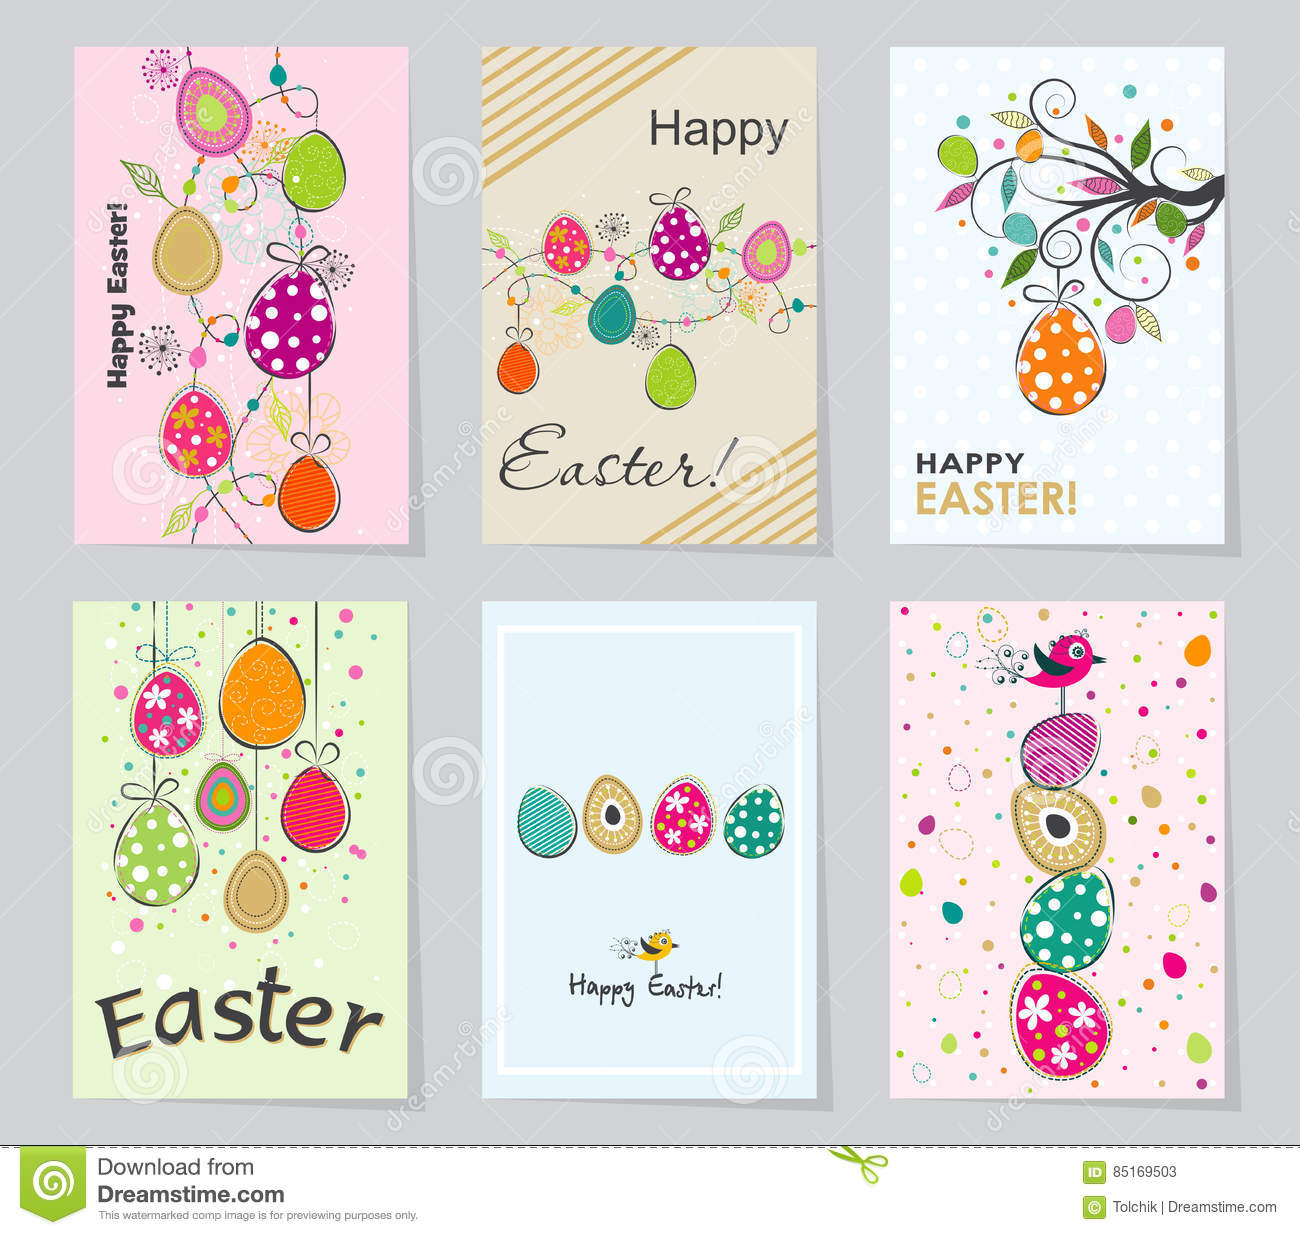 Template easter greeting card vector illustration stock vector set of colored easter greeting cards design template creative cards posters label banner invitations planner gift tags diary notes m4hsunfo